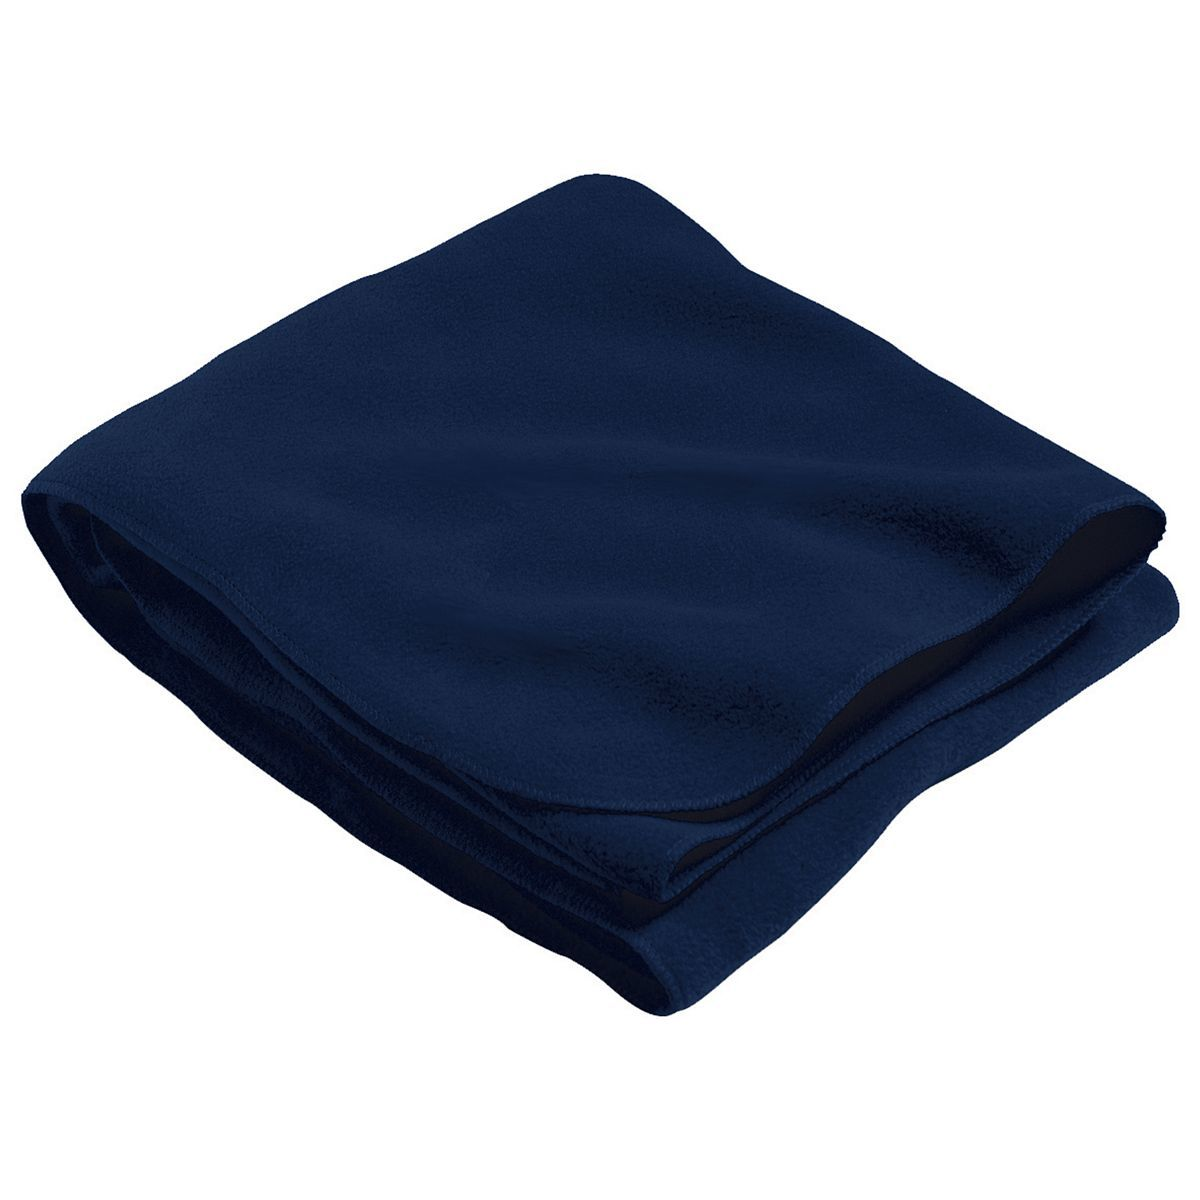 Stadium Blanket - NAVY